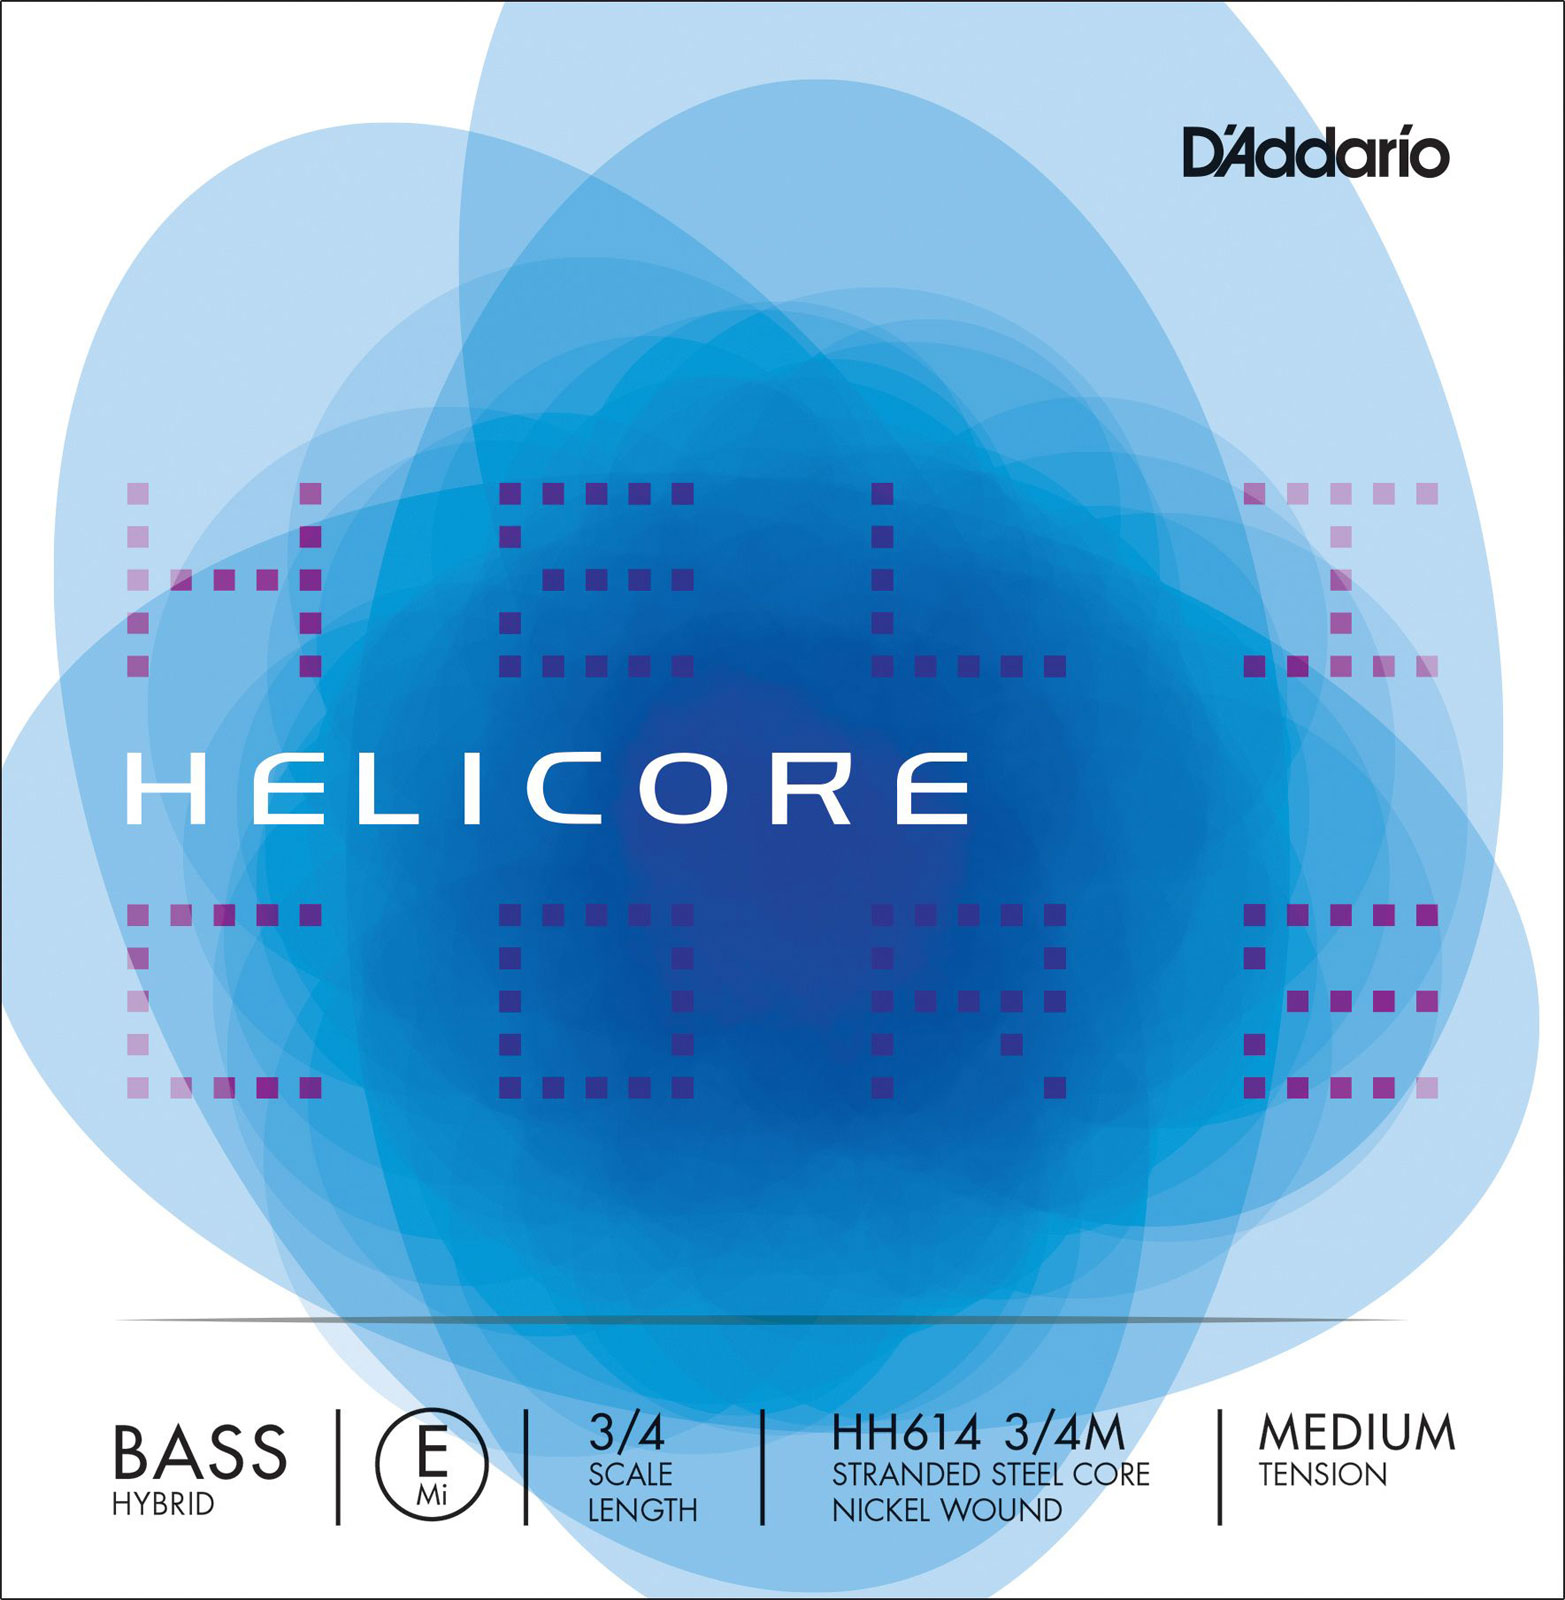 3/4 HELICORE HYBRID BASS SINGLE E STRING SCALE MEDIUM TENSION